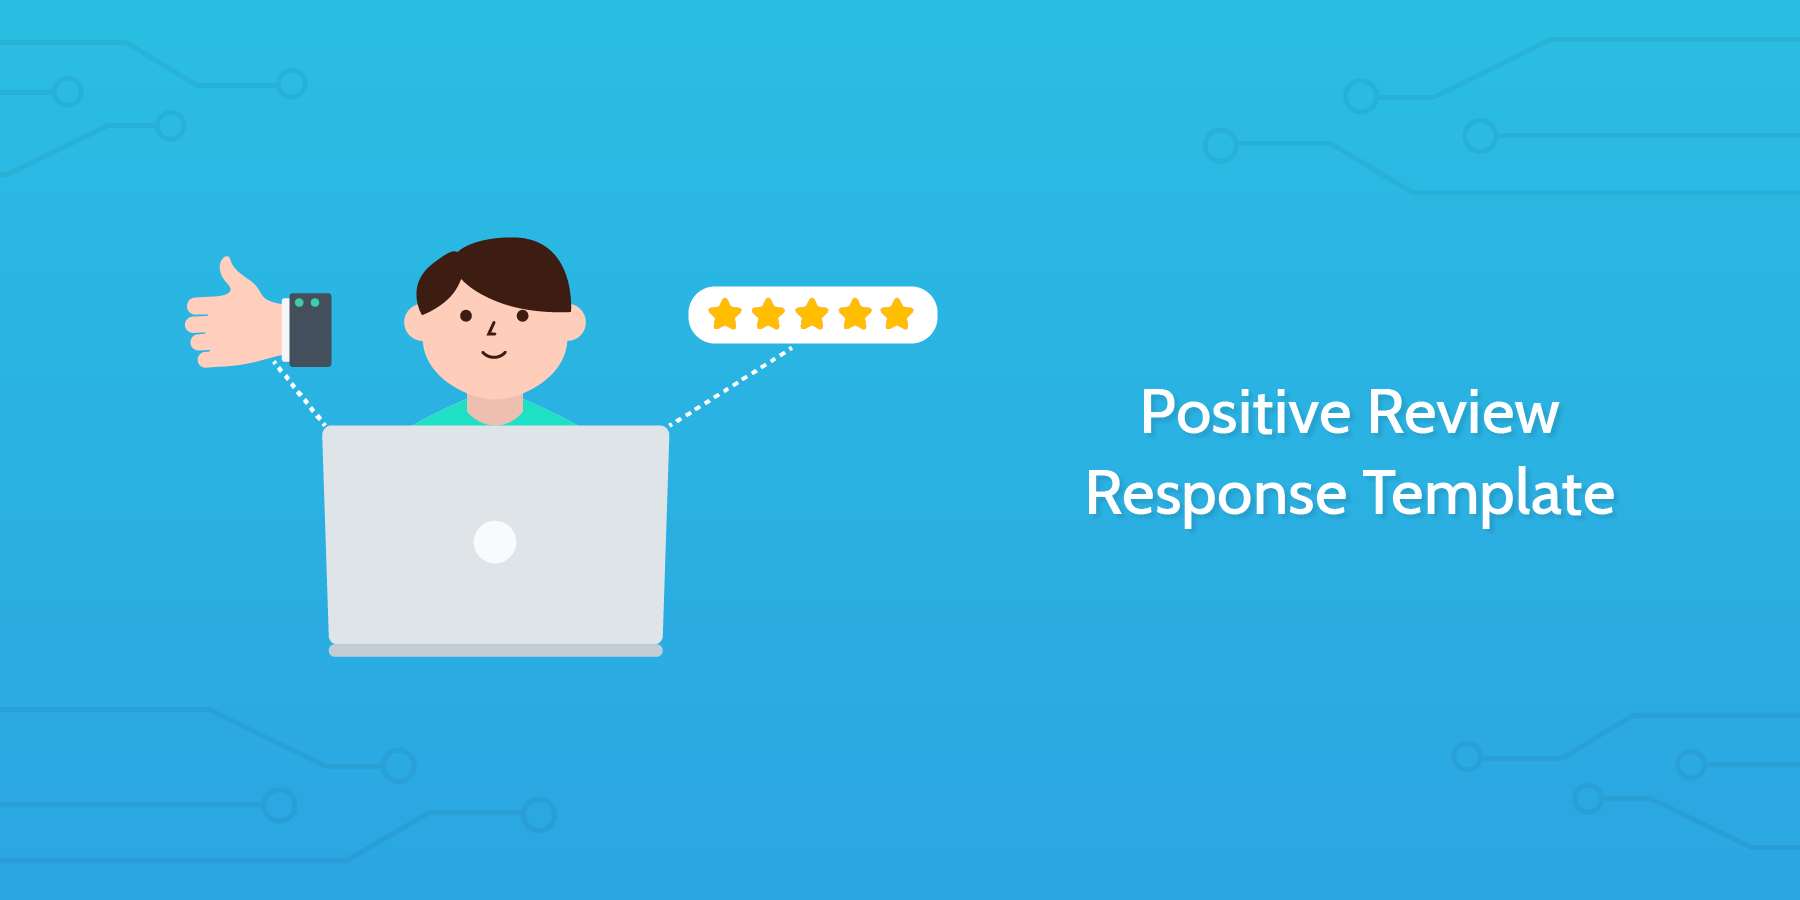 Introduction to Responding to Positive Reviews: